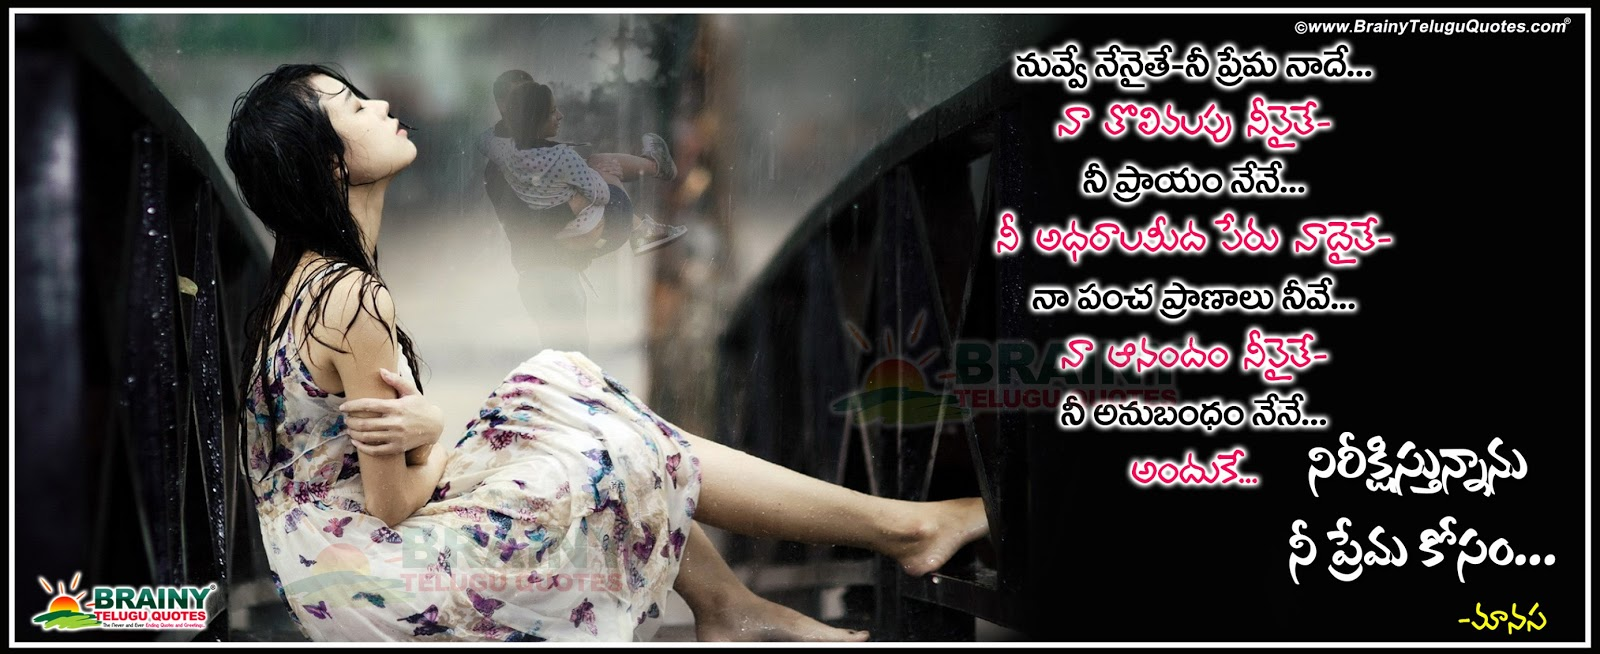 Here Is A Sad Lovers Quotations And Images For Facebook Cover PicsBest Love Failure